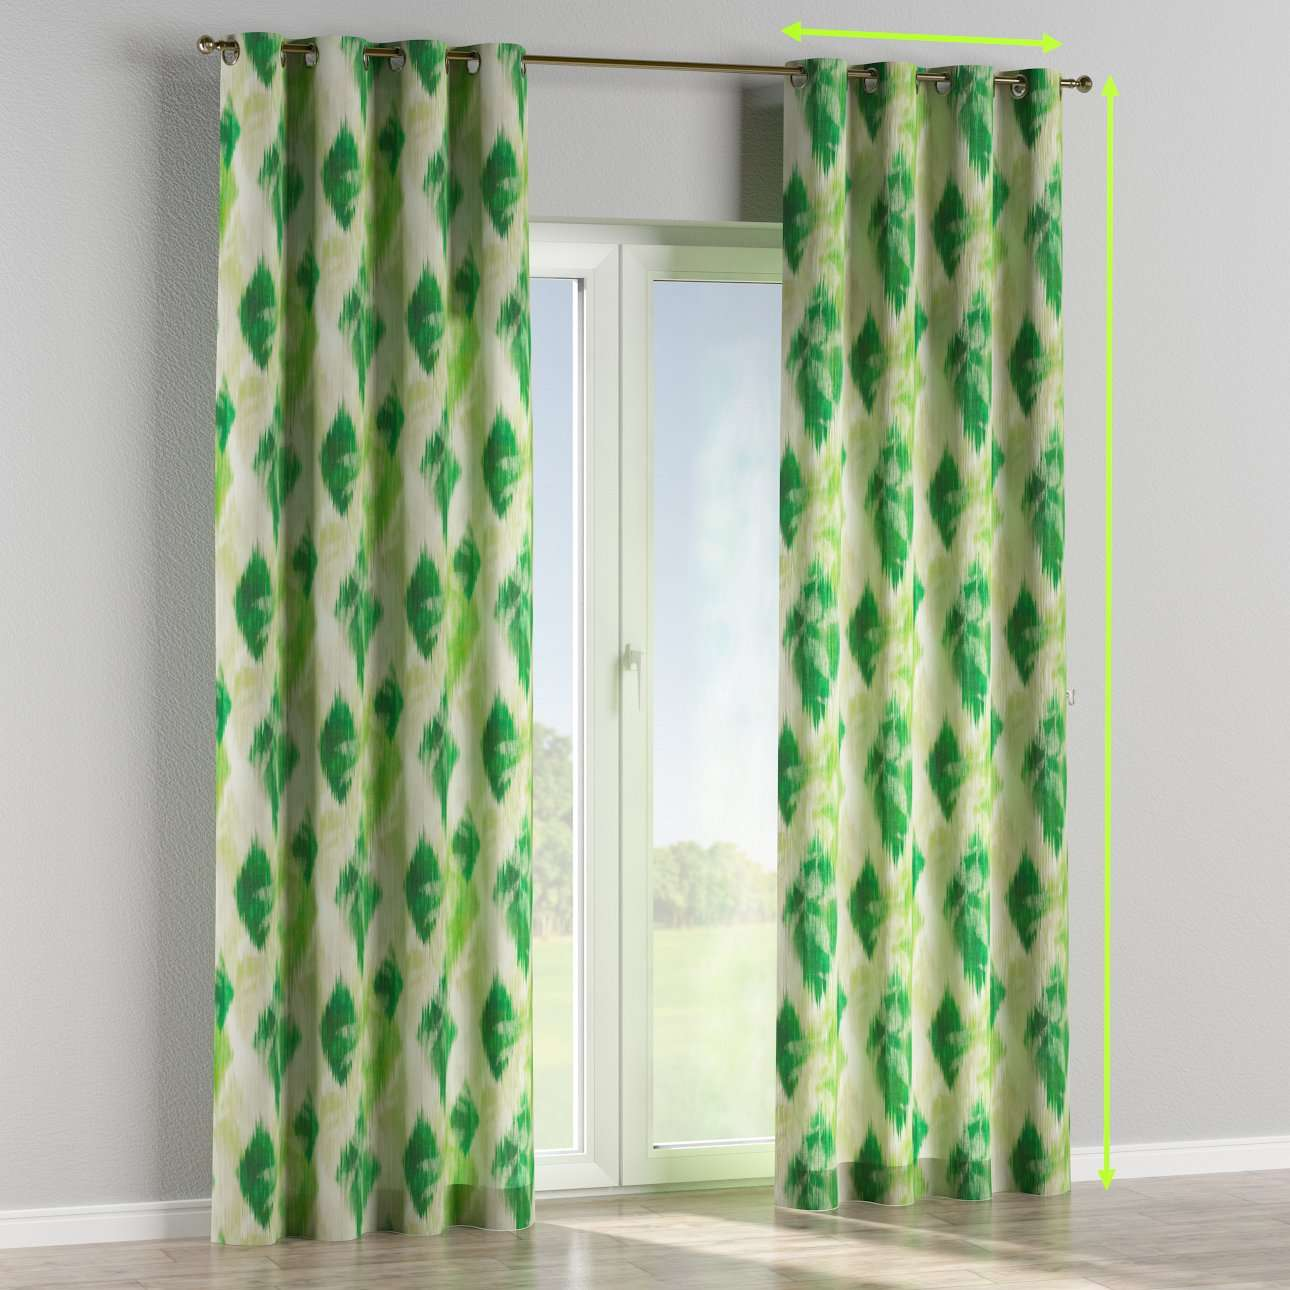 Eyelet curtains in collection Aquarelle, fabric: 140-70